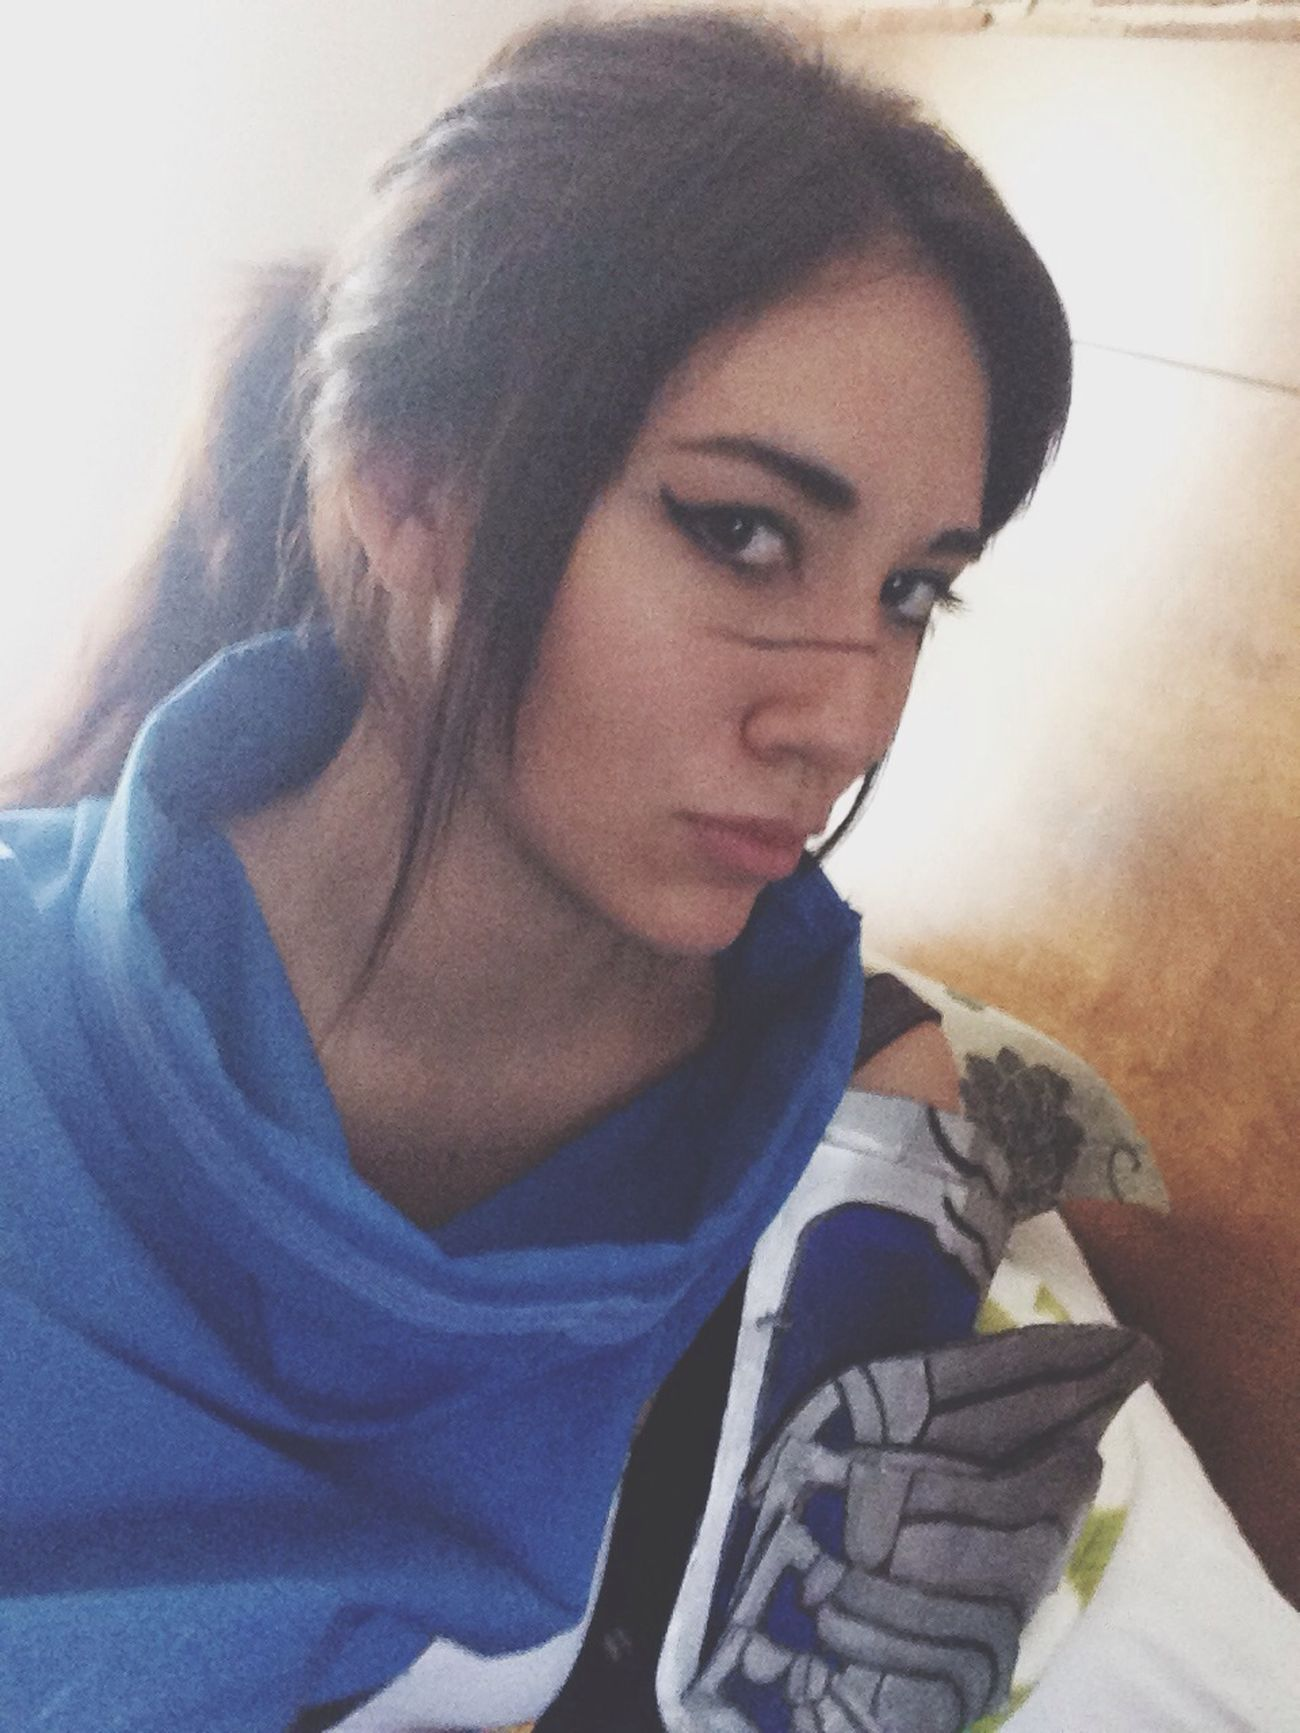 League of legends cosplay female yasuo Yasuo League Of Legends Cosplay Attractive